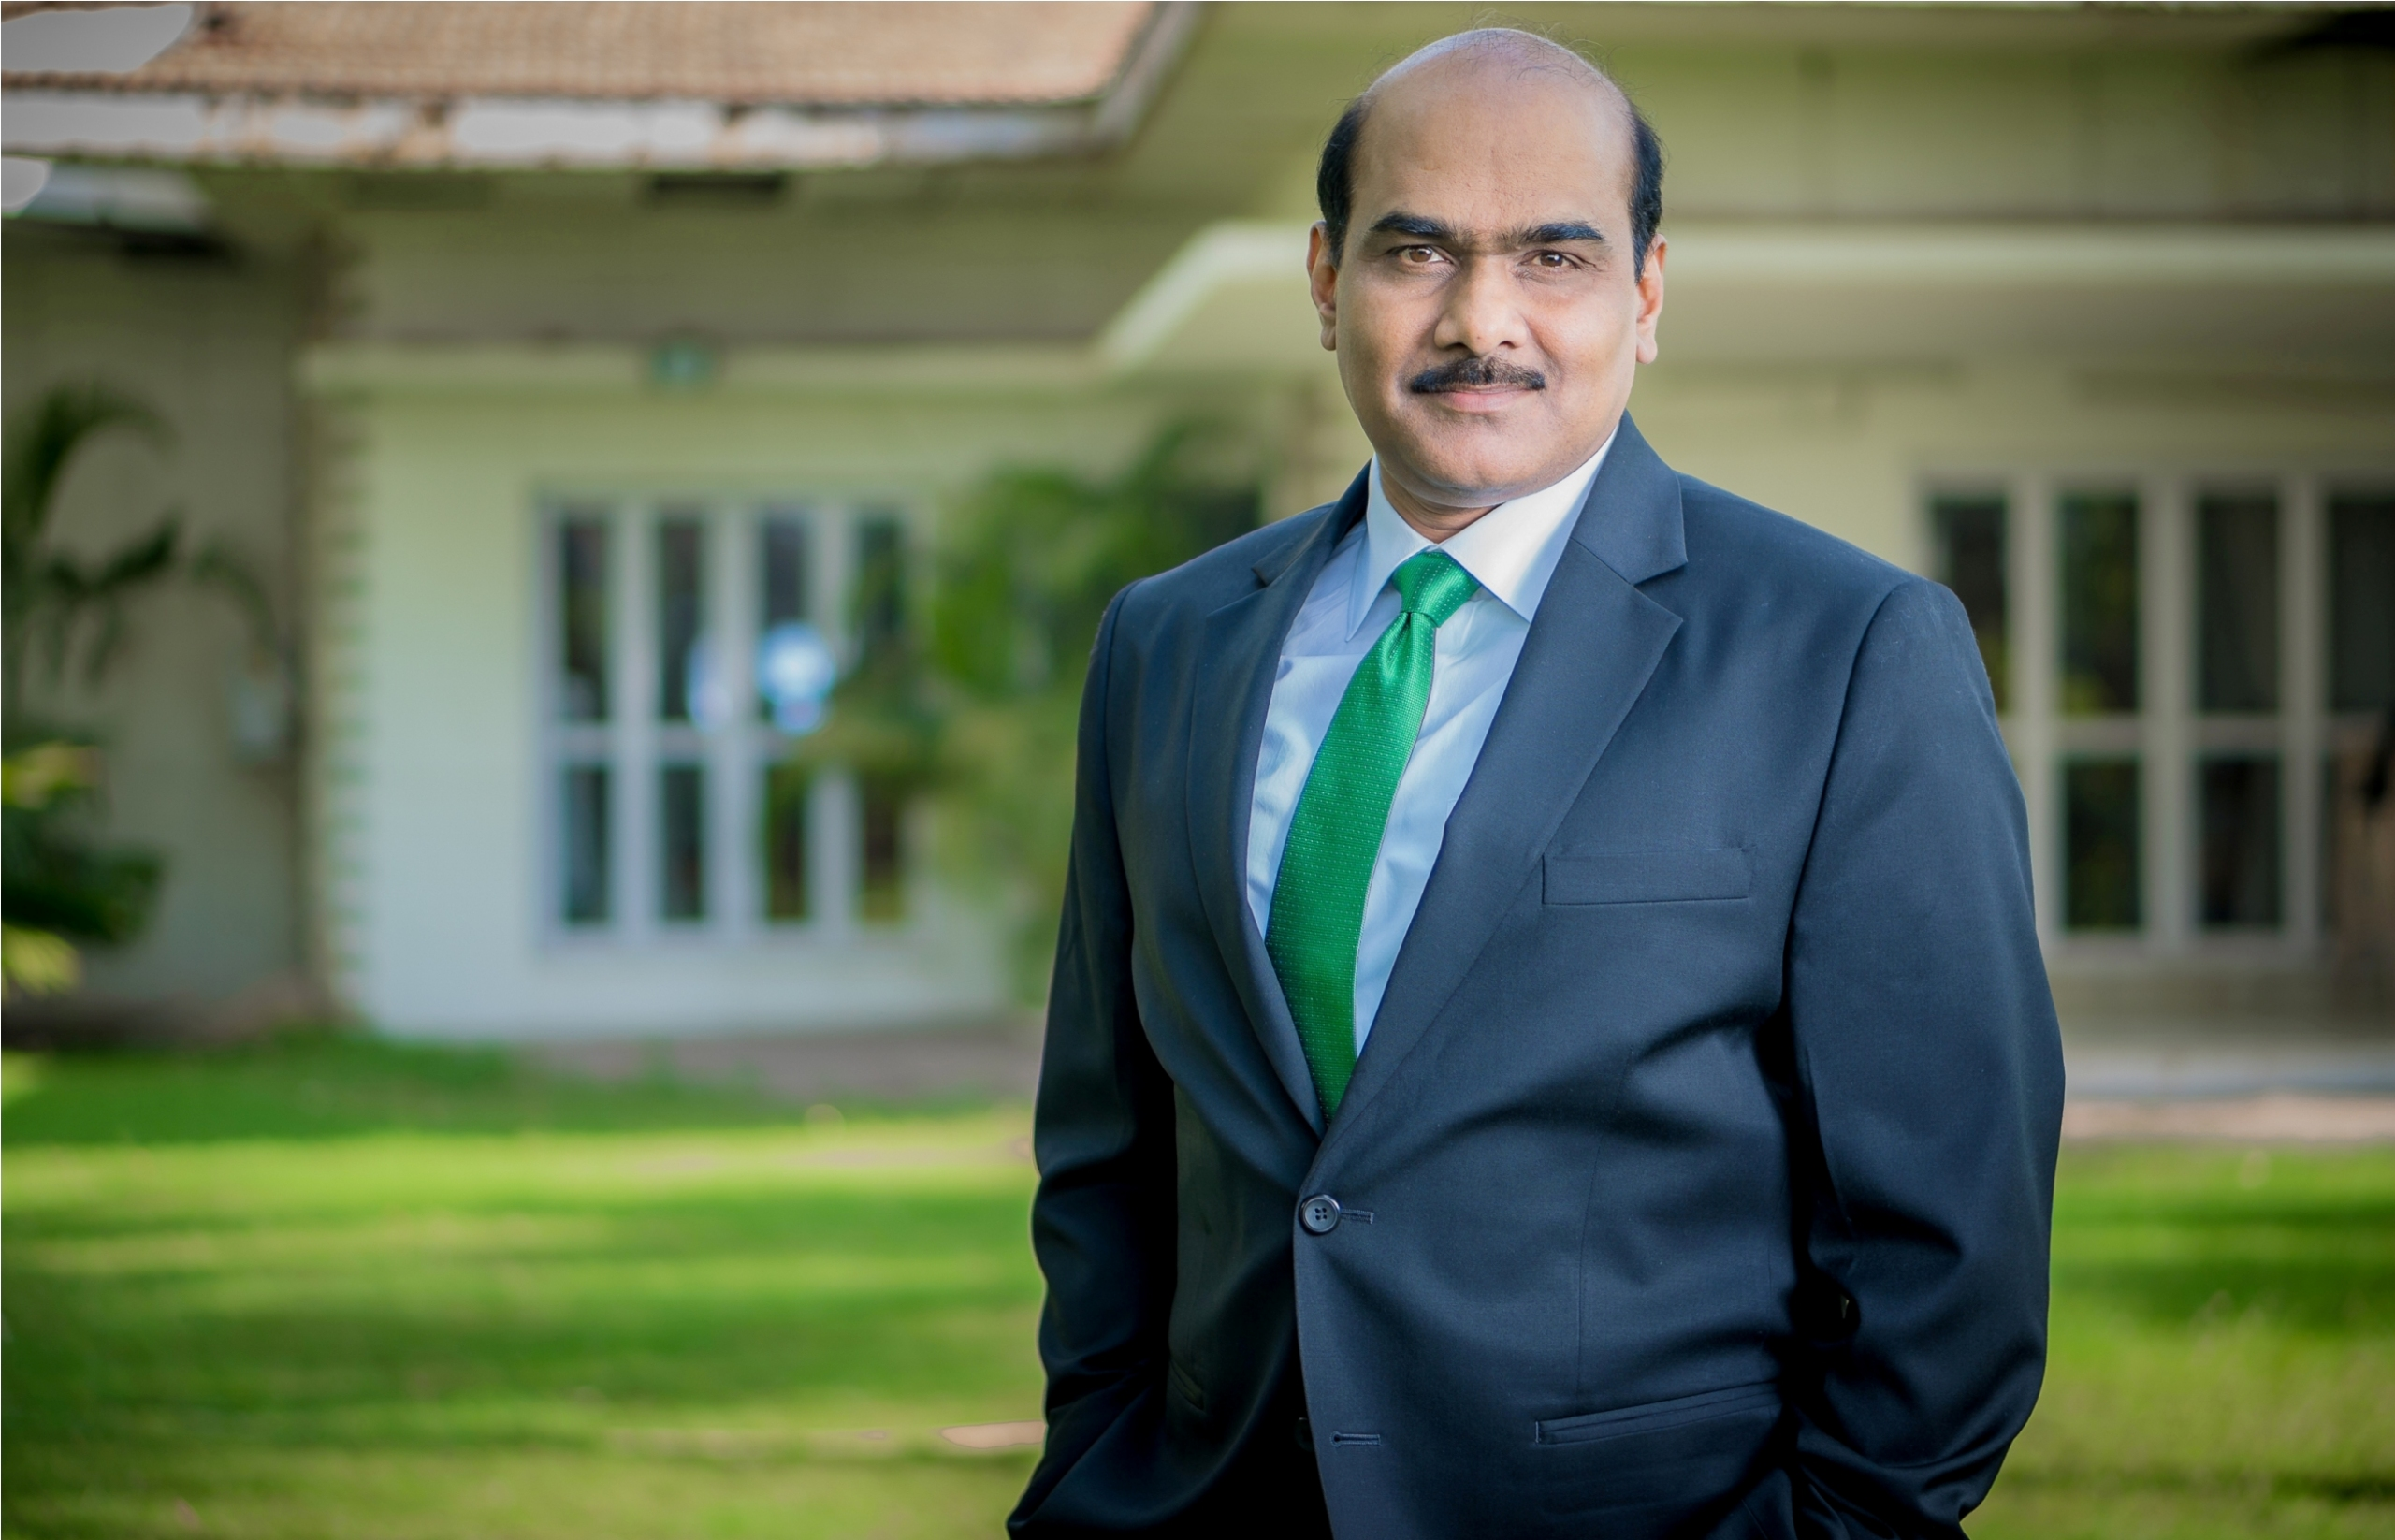 Post budget quote – Mr. Harsha Kadam, CEO Schaeffler India and President Industrial Business